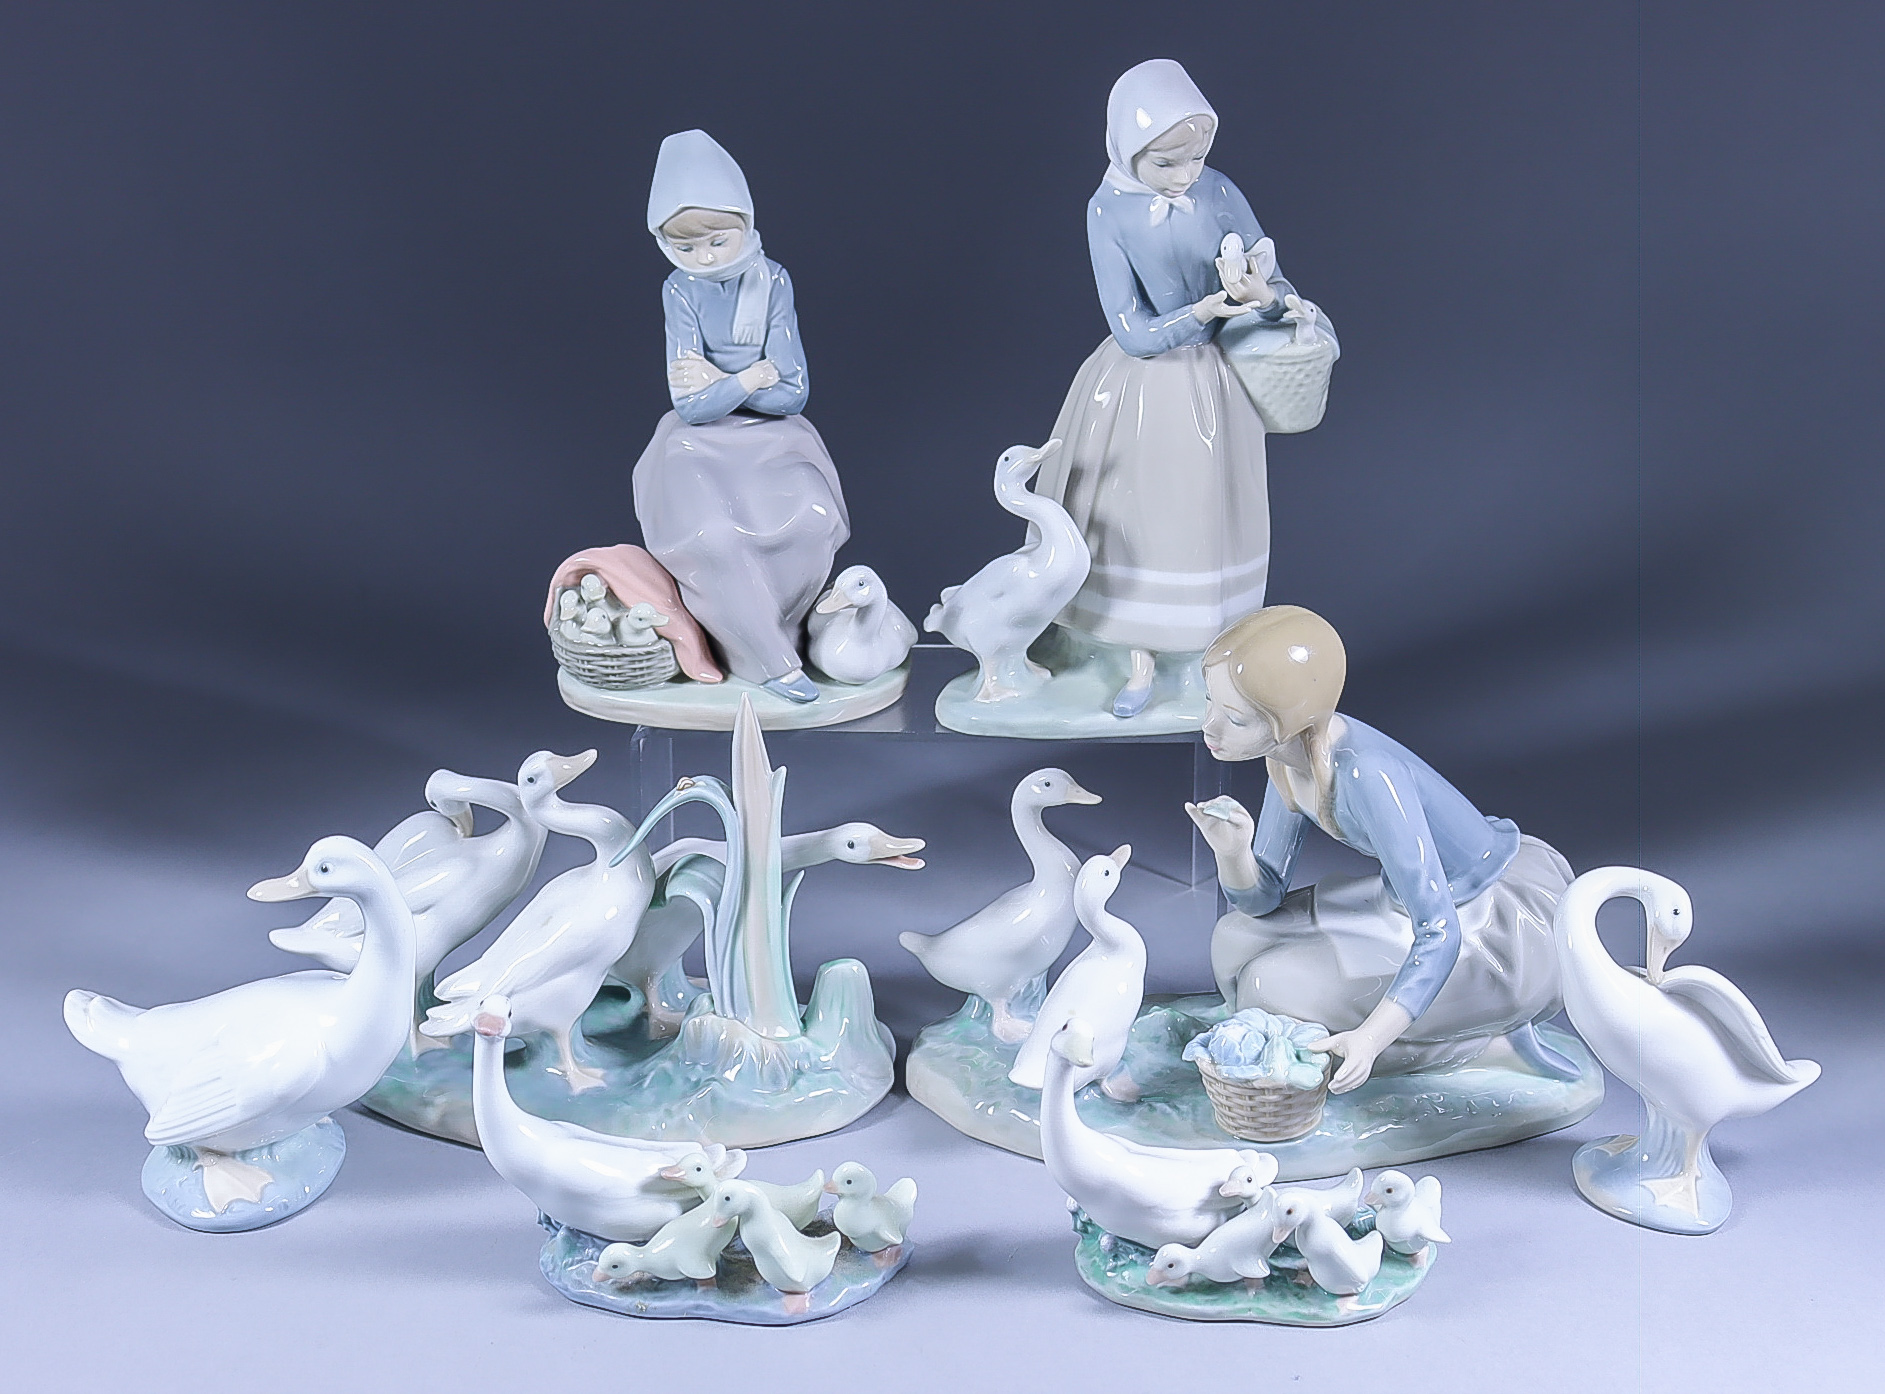 A Collection of Lladro and Nao Porcelain Figures, including - kneeling girl feeding two ducks, 6.